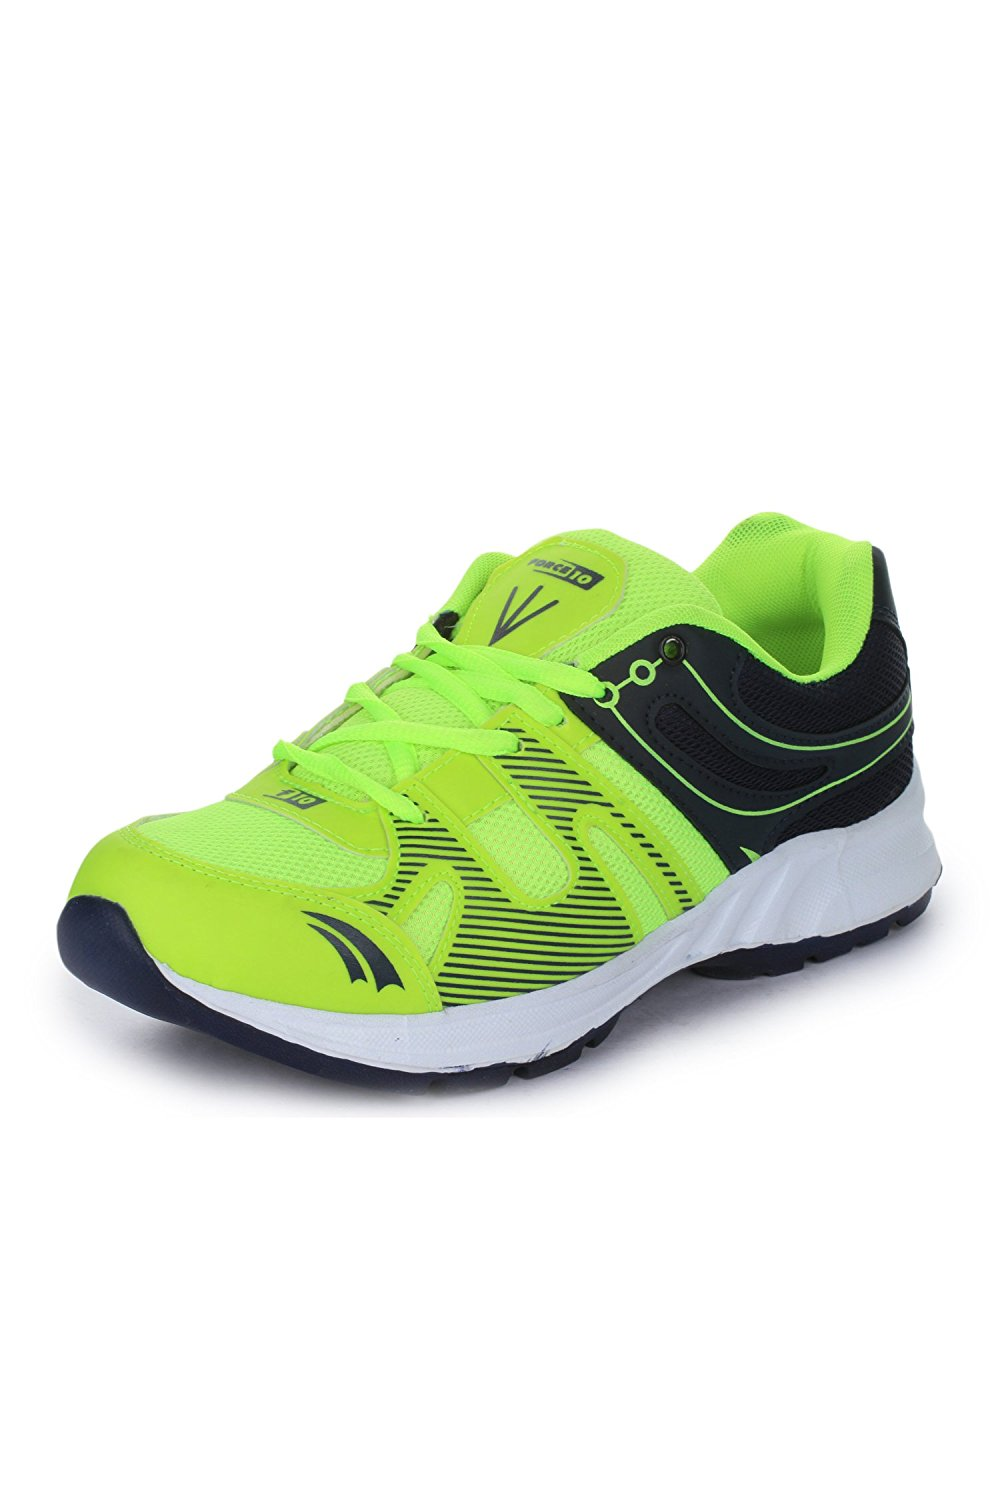 Flat 70% OFF @ Force 10 (from Liberty) Men's Running Shoes